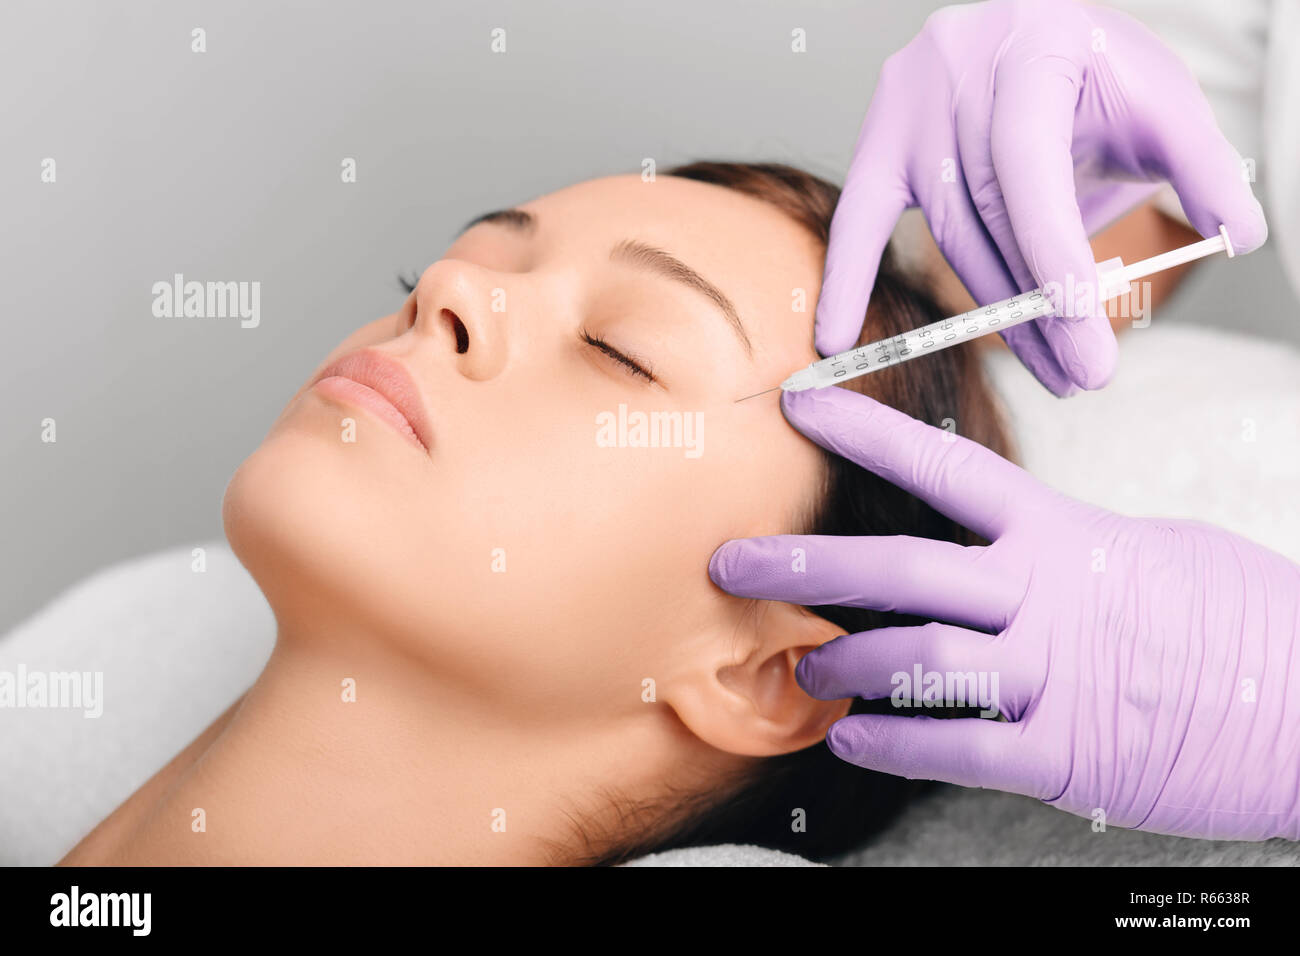 facial injections for facelift and anti-aging effect, wrinkle removing Stock Photo